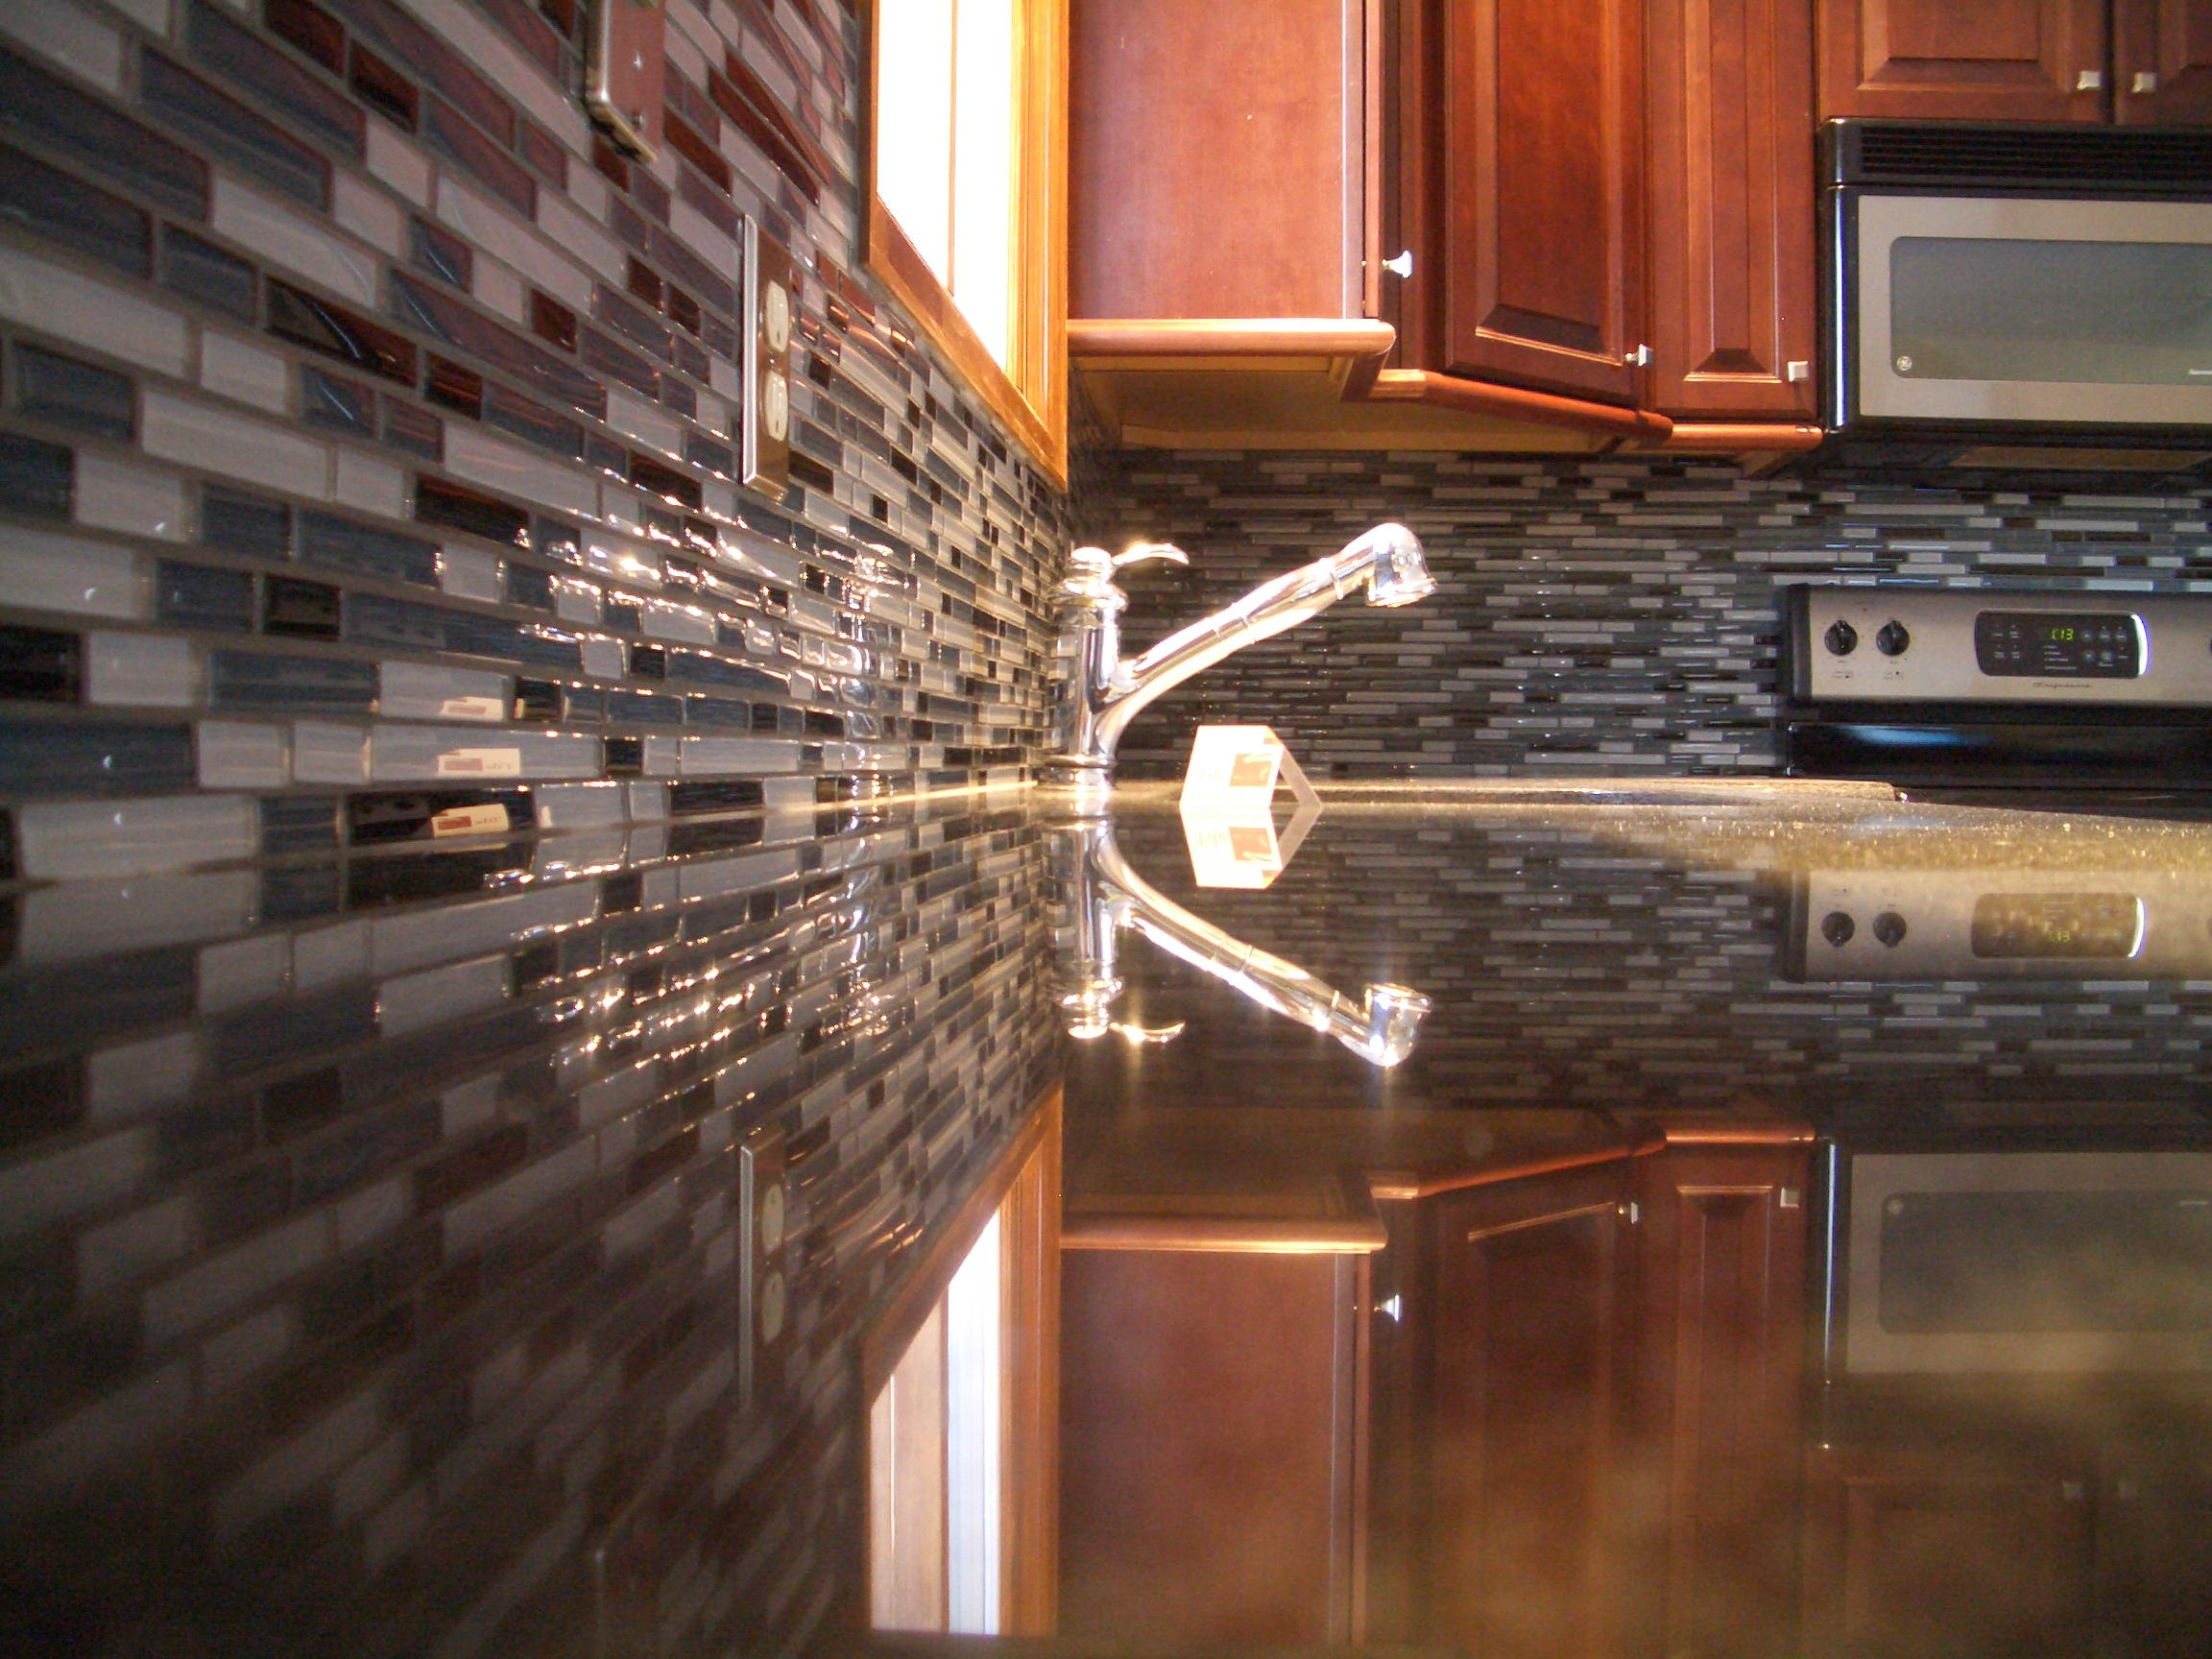 28 kitchen glass backsplash ideas remarkable cheap glass kitchen glass backsplash ideas unique holiday gift idea glass kitchen backsplash